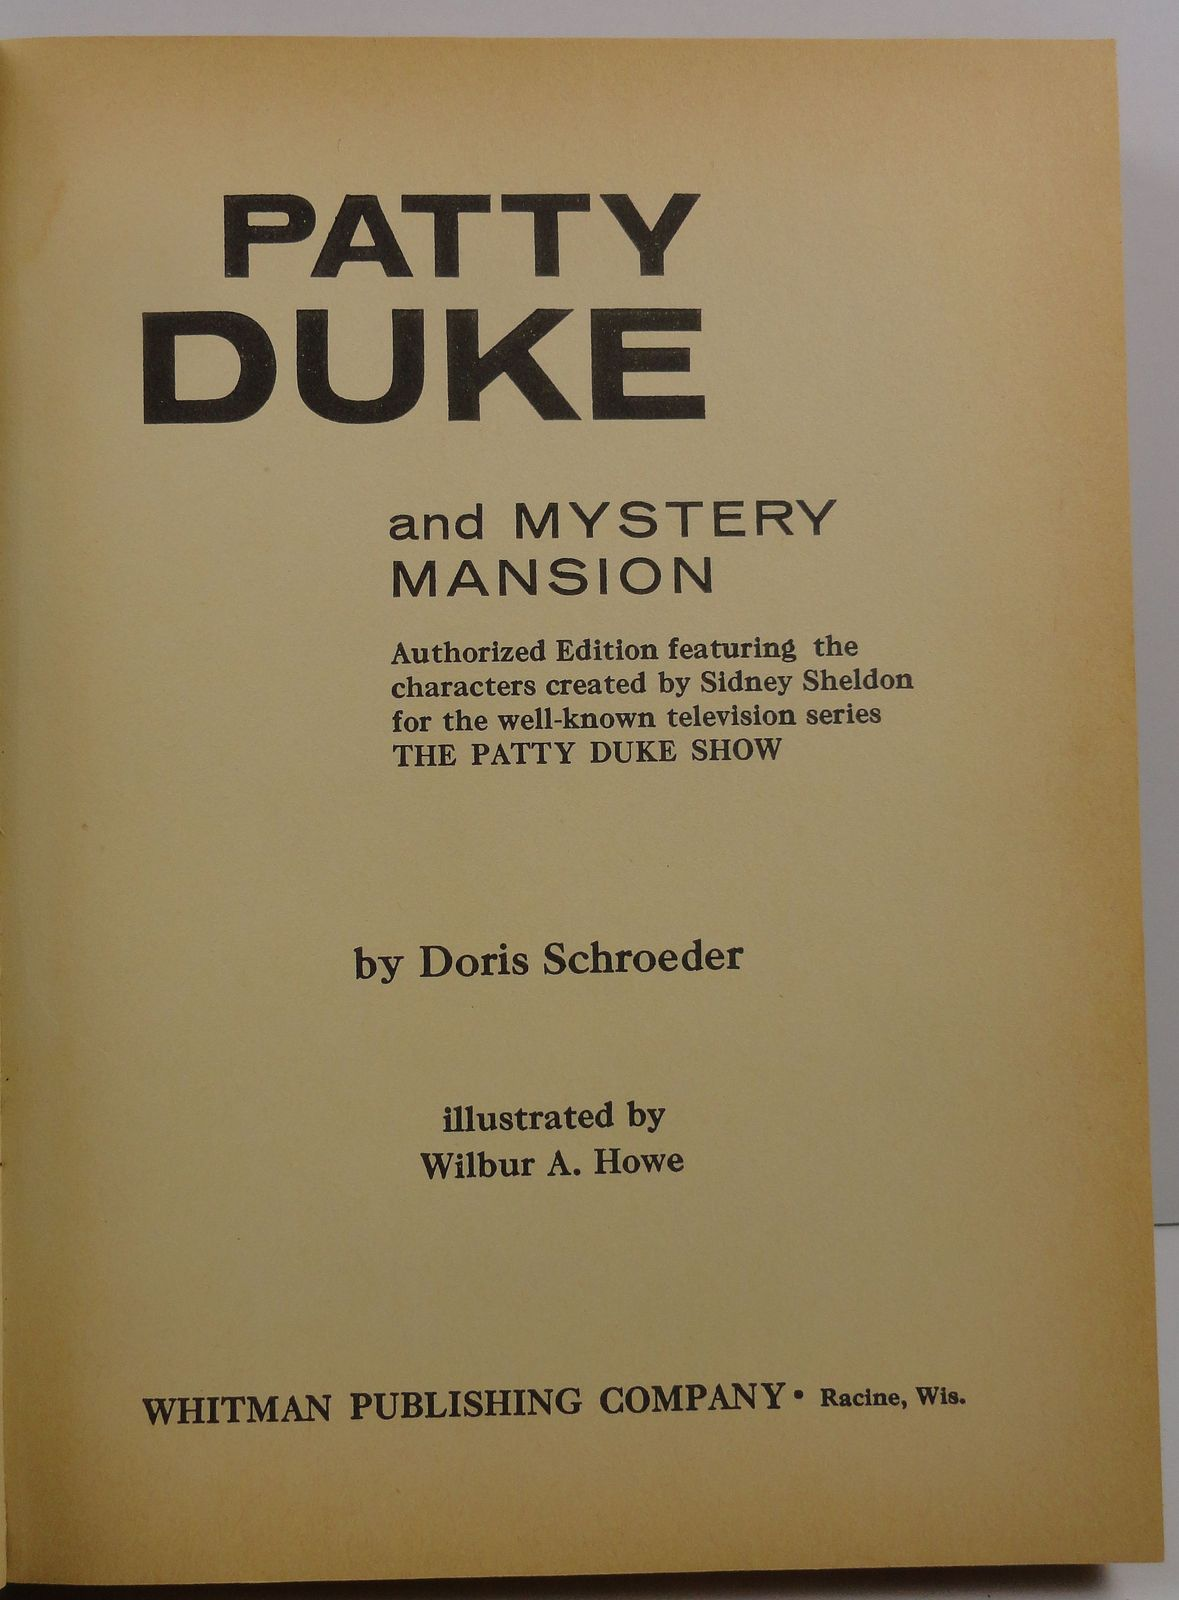 Patty Duke and Mystery Mansion Doris Schroeder 1964 Whitman